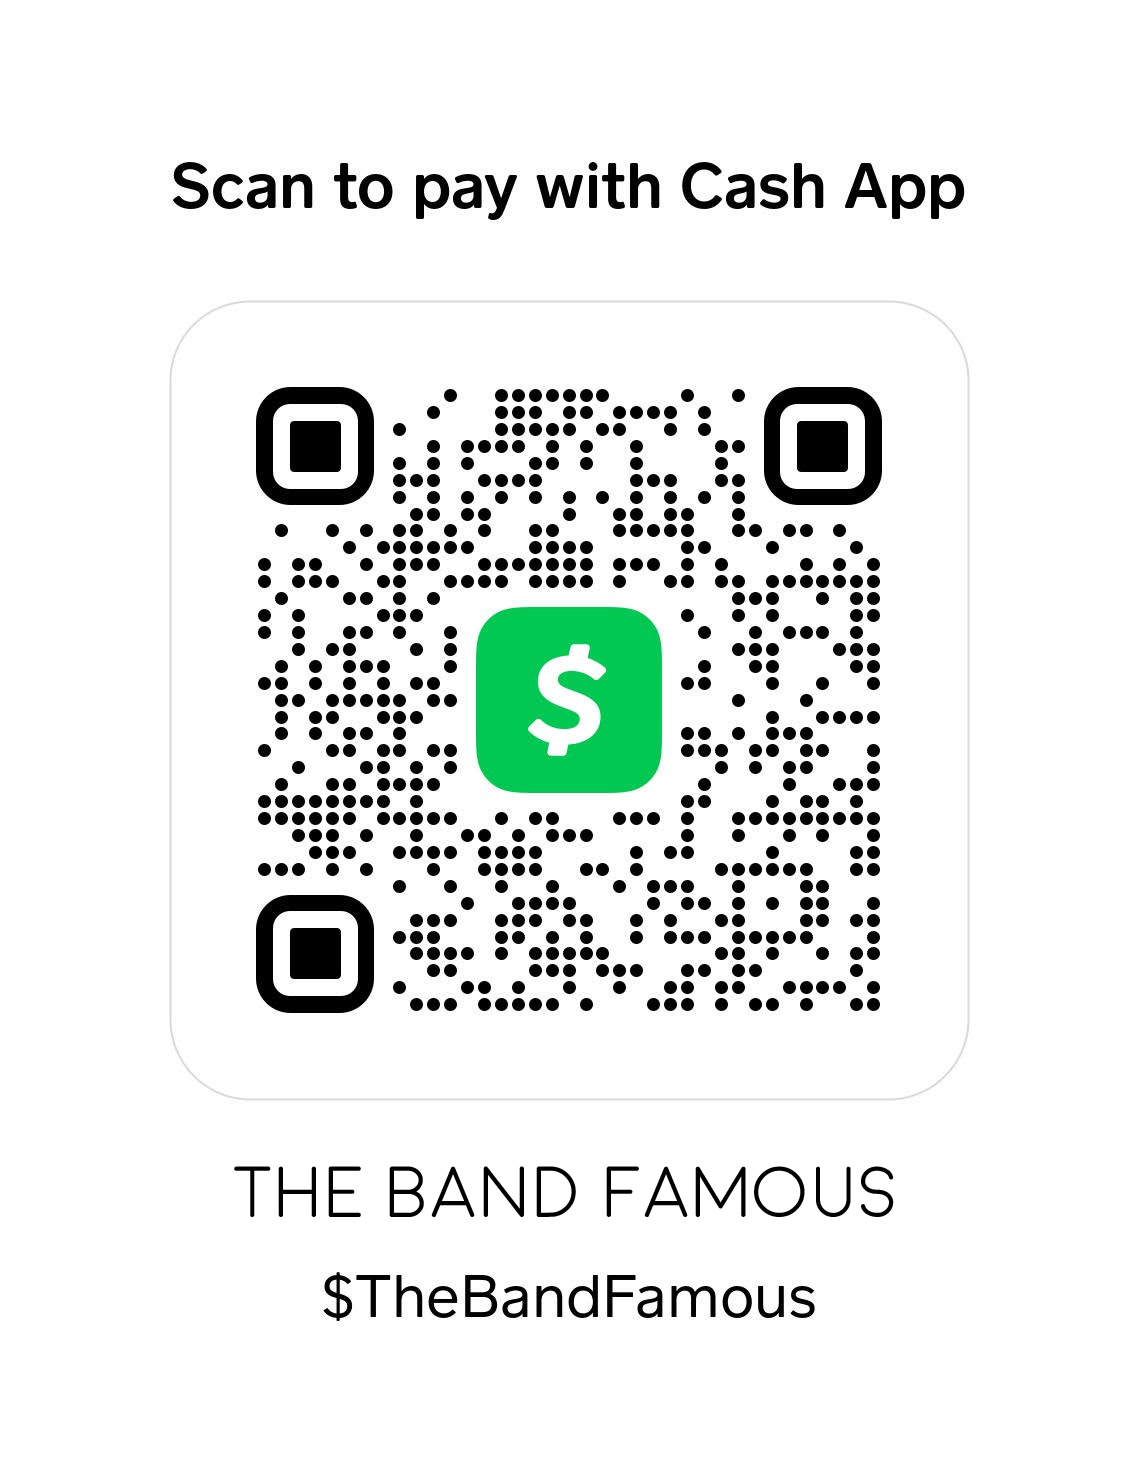 Donate to The Band Famous with Cash App